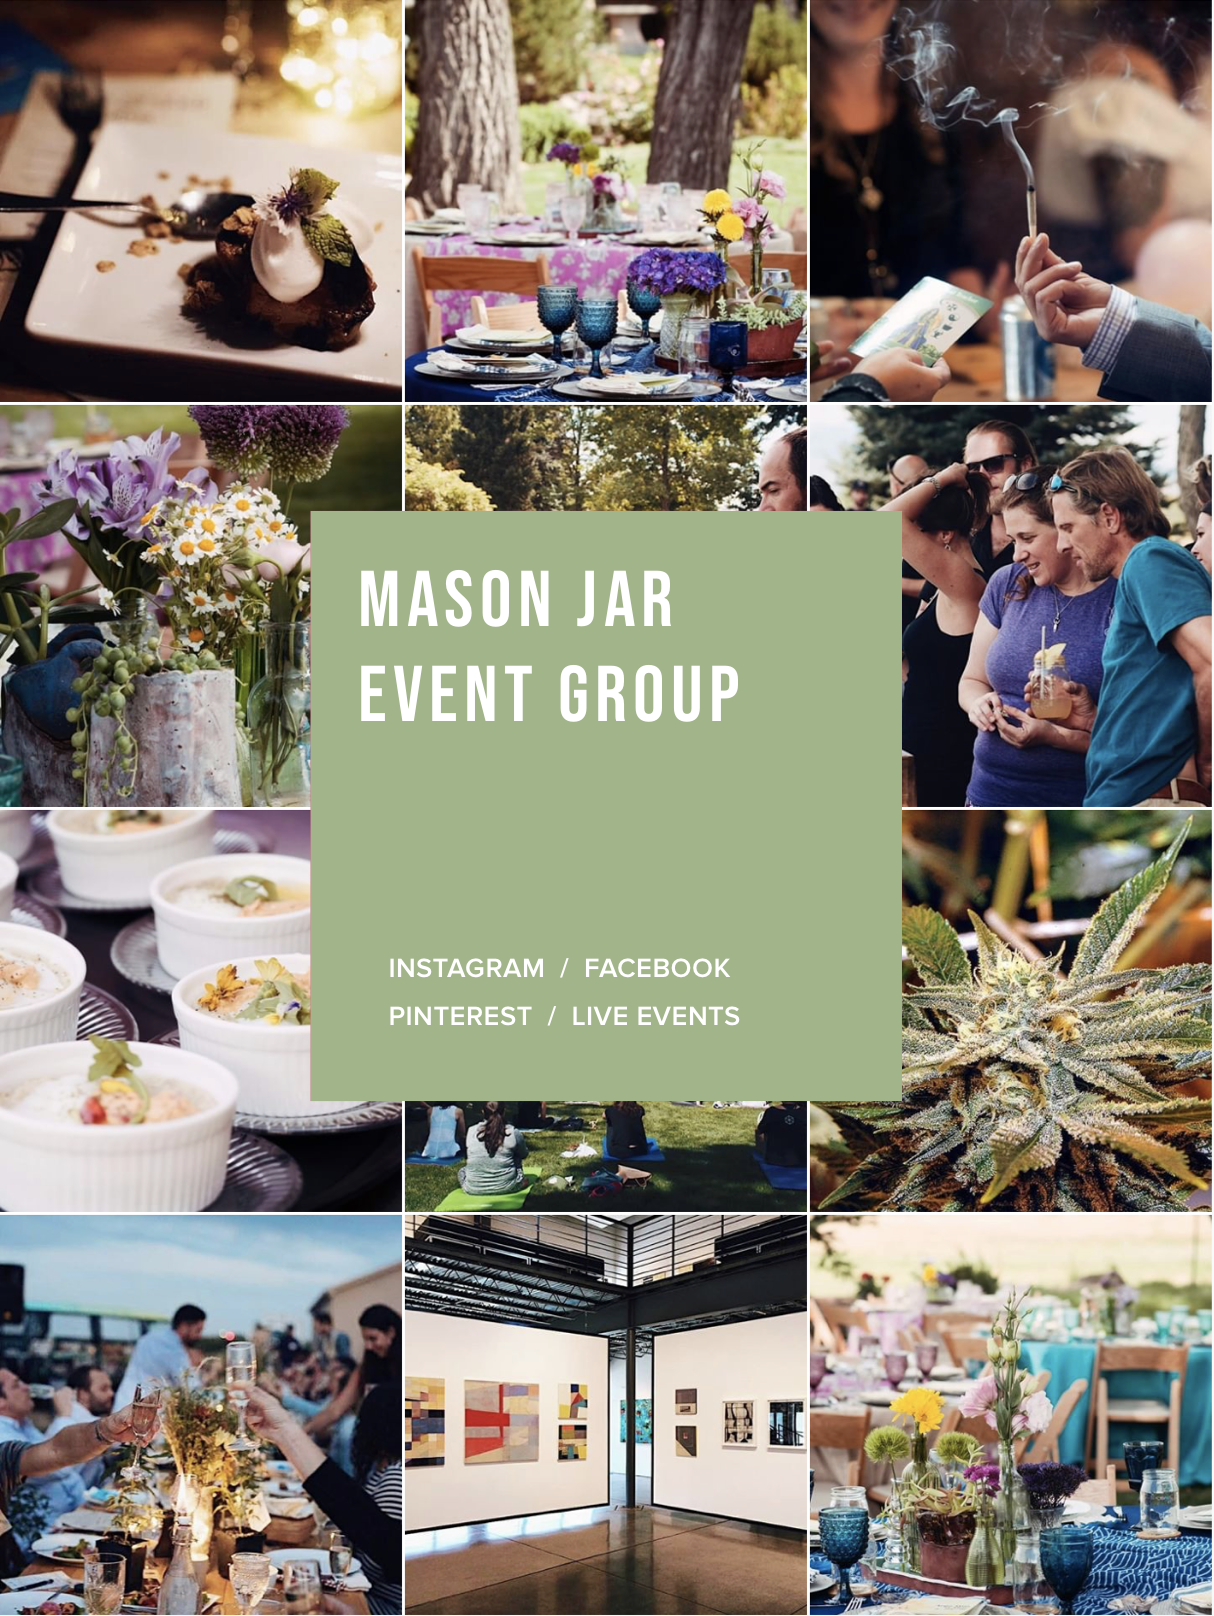 Mason Jar Event Group